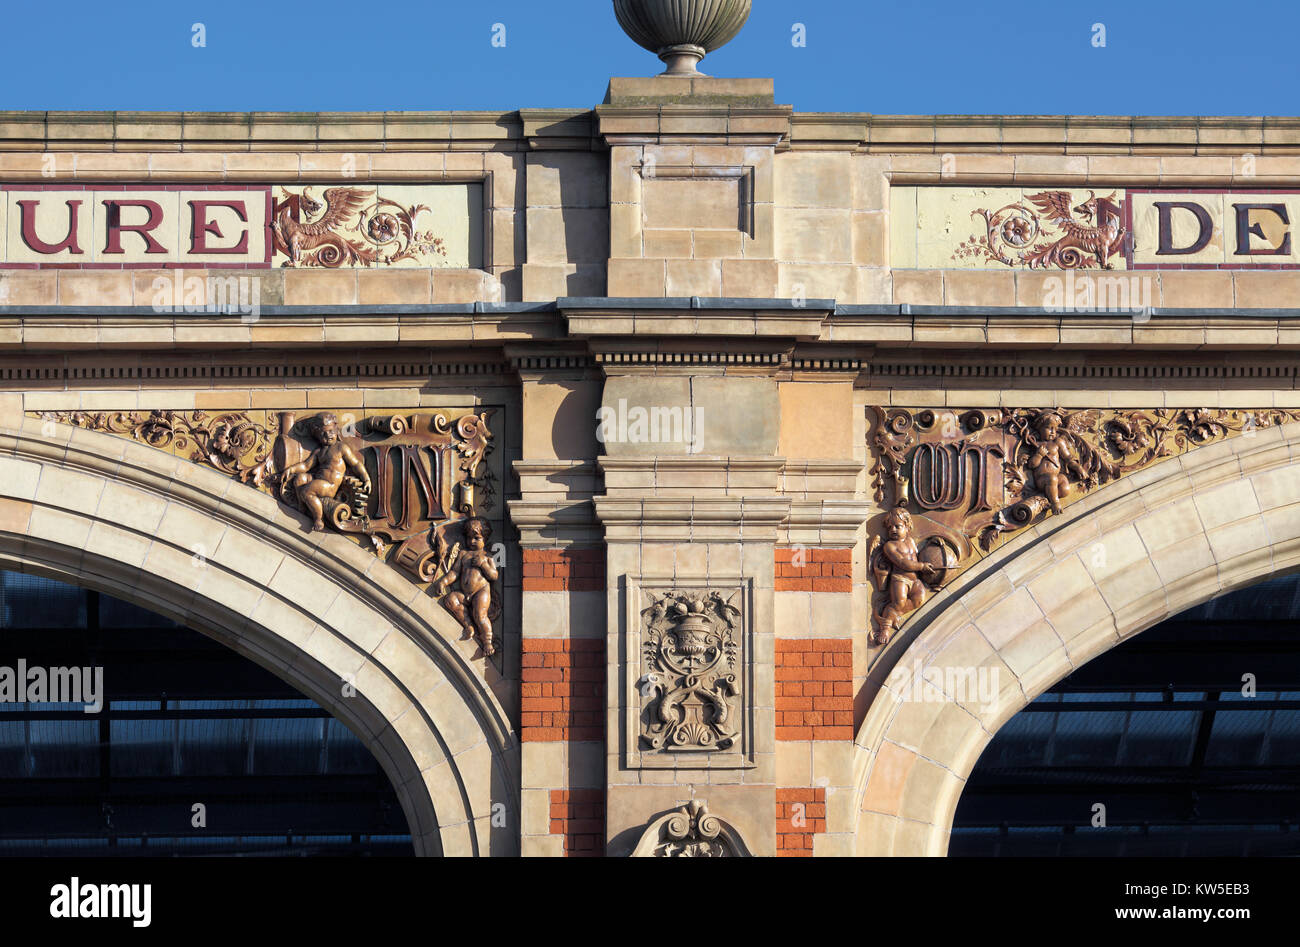 Ornate 'In' and 'Out' lettering in spandrels on the arched frontage of the late-Victorian (1892) - Stock Image